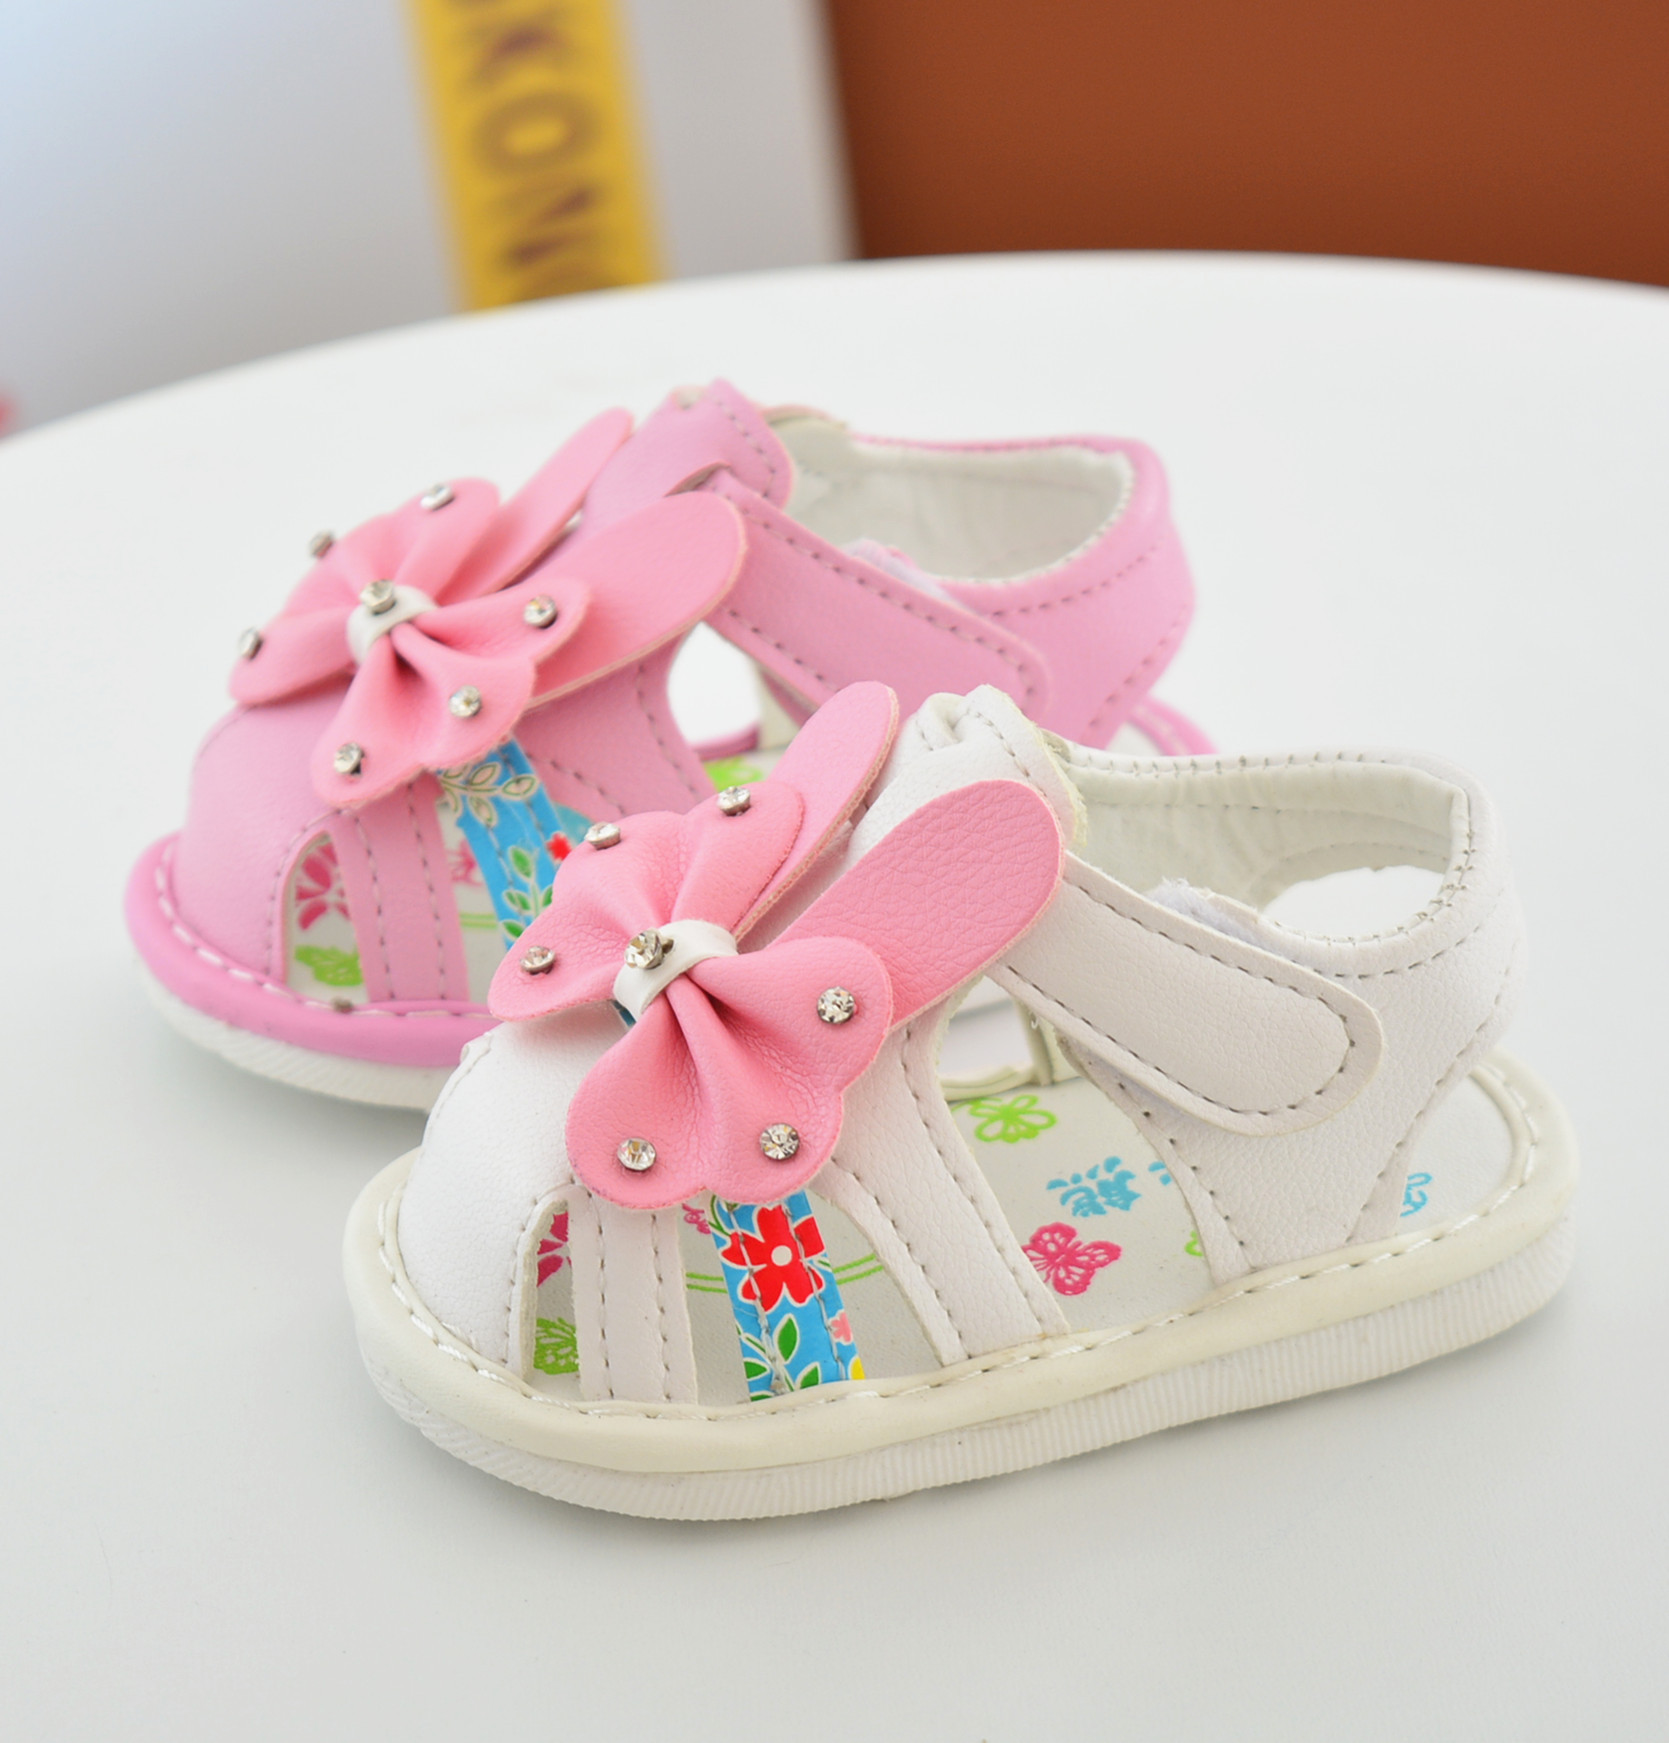 Tenis Jeans Real Baby Boys Sandals 2017 New Girls Casual Shoes